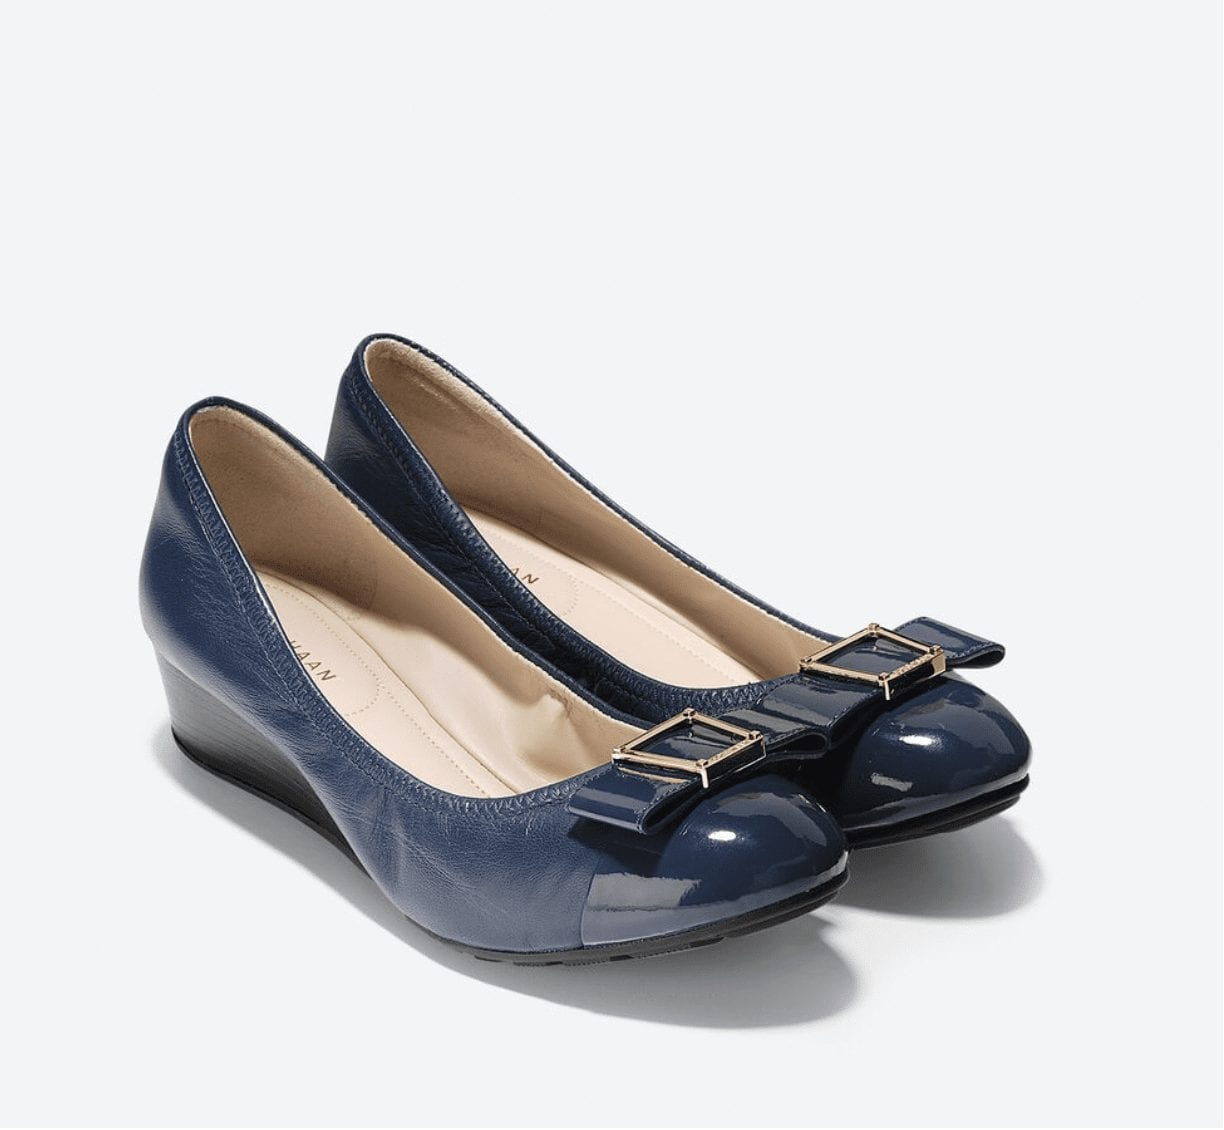 Cole Haan: Extra 25% off 2+ Sale styles